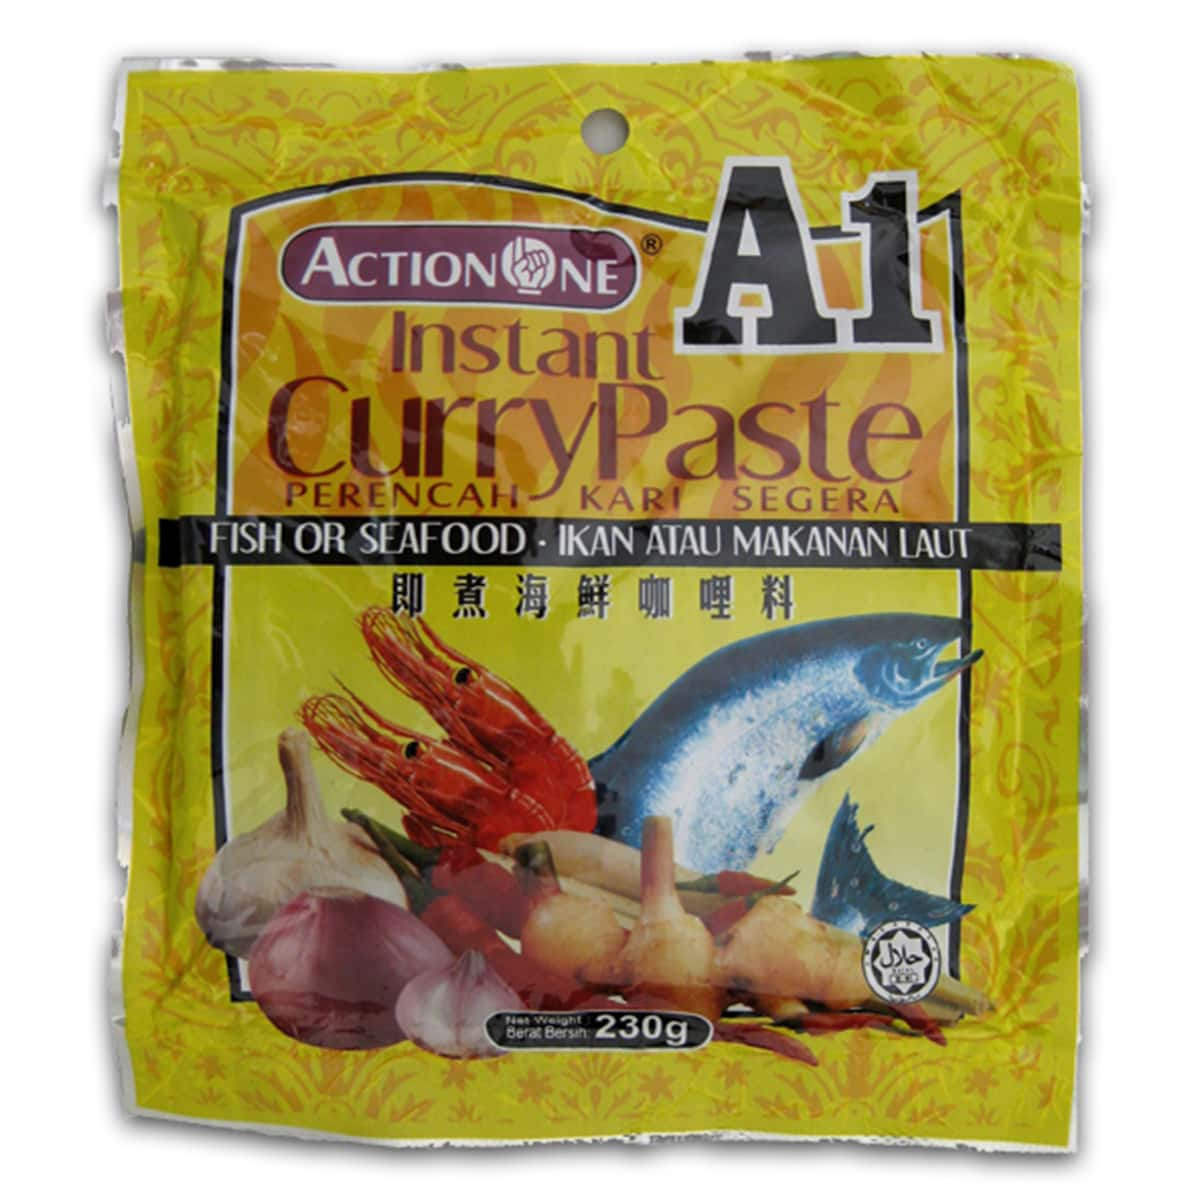 Buy Action One (A1) Instant Curry Paste (Fish or Seafood) - 230 gm